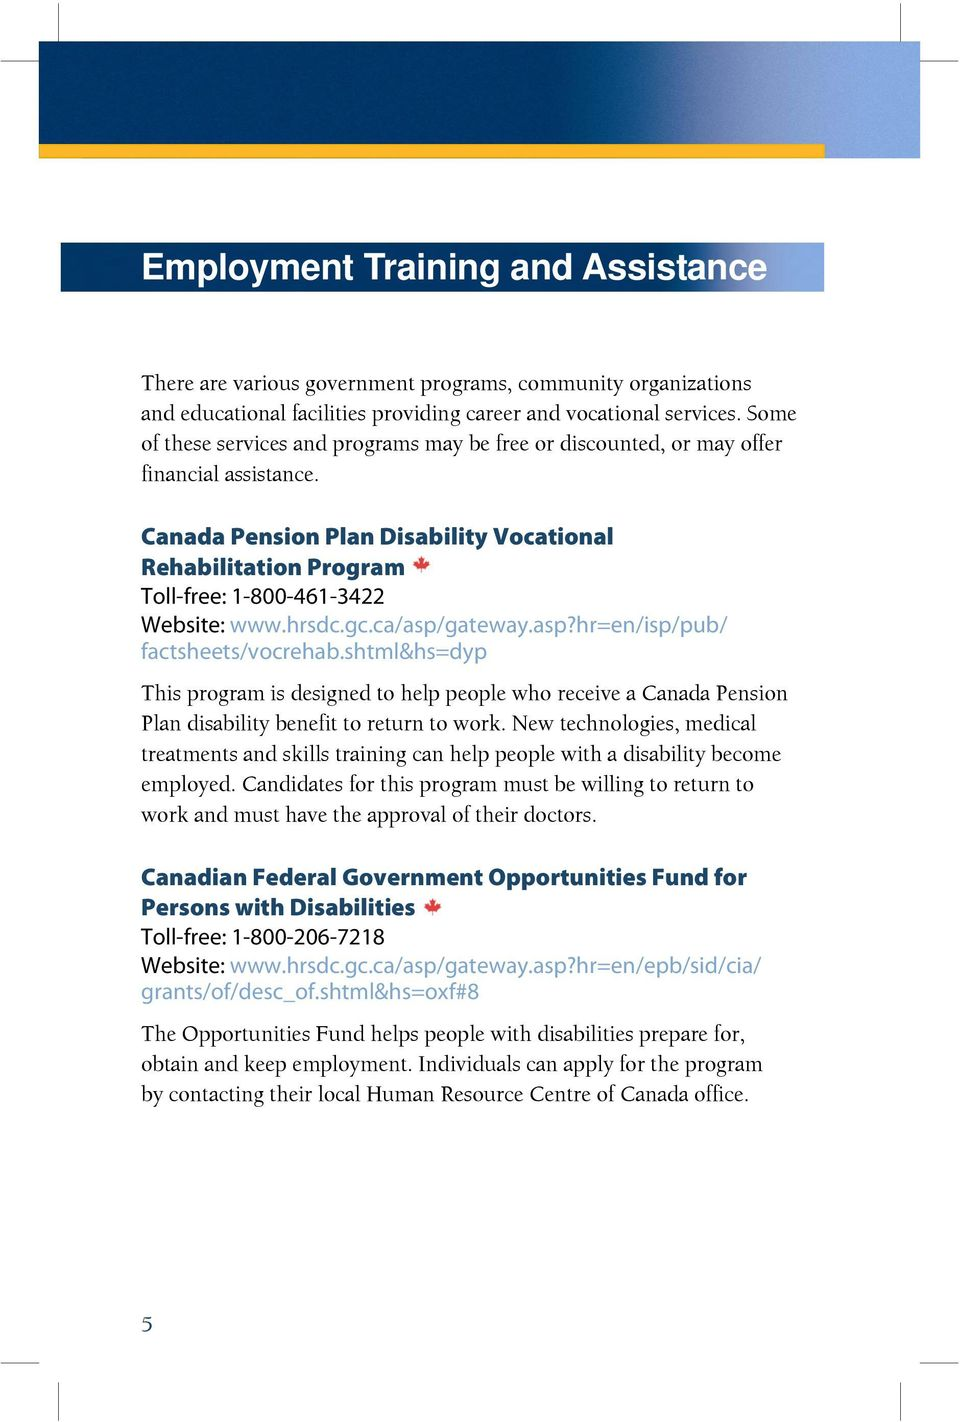 Canada Pension Plan Disability Vocational Rehabilitation Program Toll-free: 1-800-461-3422 Website: www.hrsdc.gc.ca/asp/gateway.asp?hr=en/isp/pub/ factsheets/vocrehab.